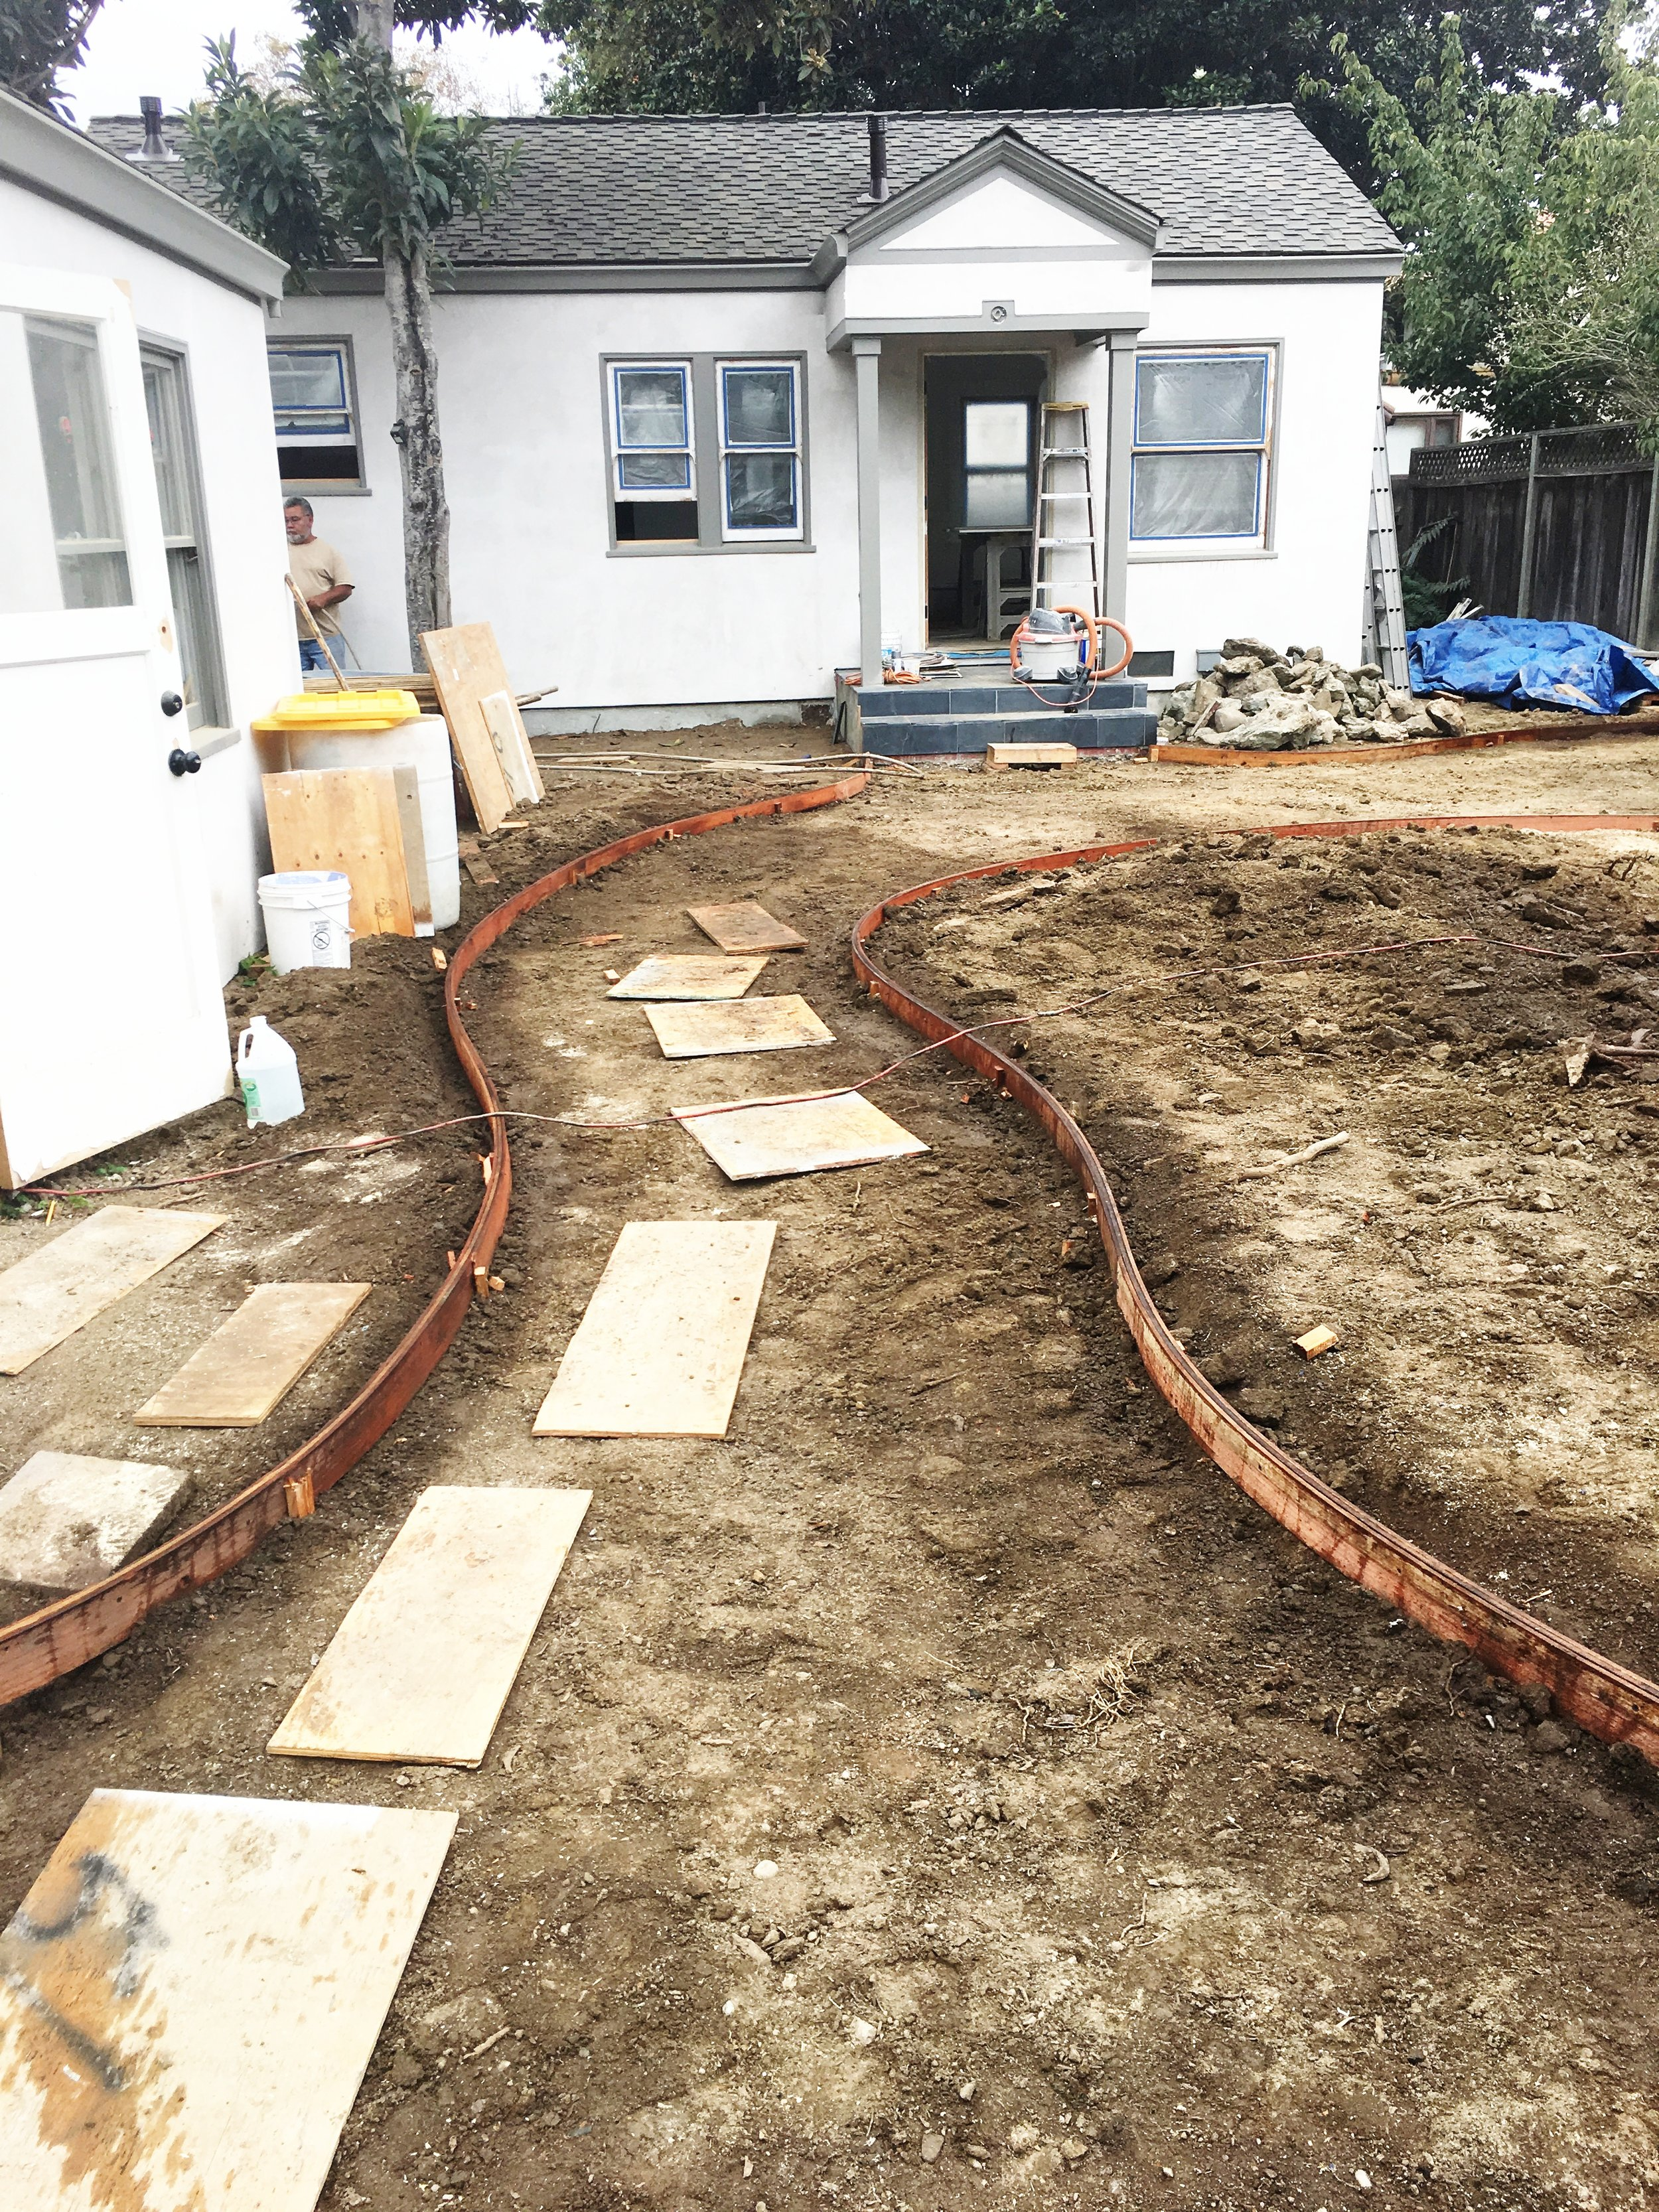 And here is the pathway to the cottage. This will be filled with gray DG (Decomposed Granite). The grass is going to be that groovy No-Mow lawn which is lovely to look and AND drought-tolerant. Win win!